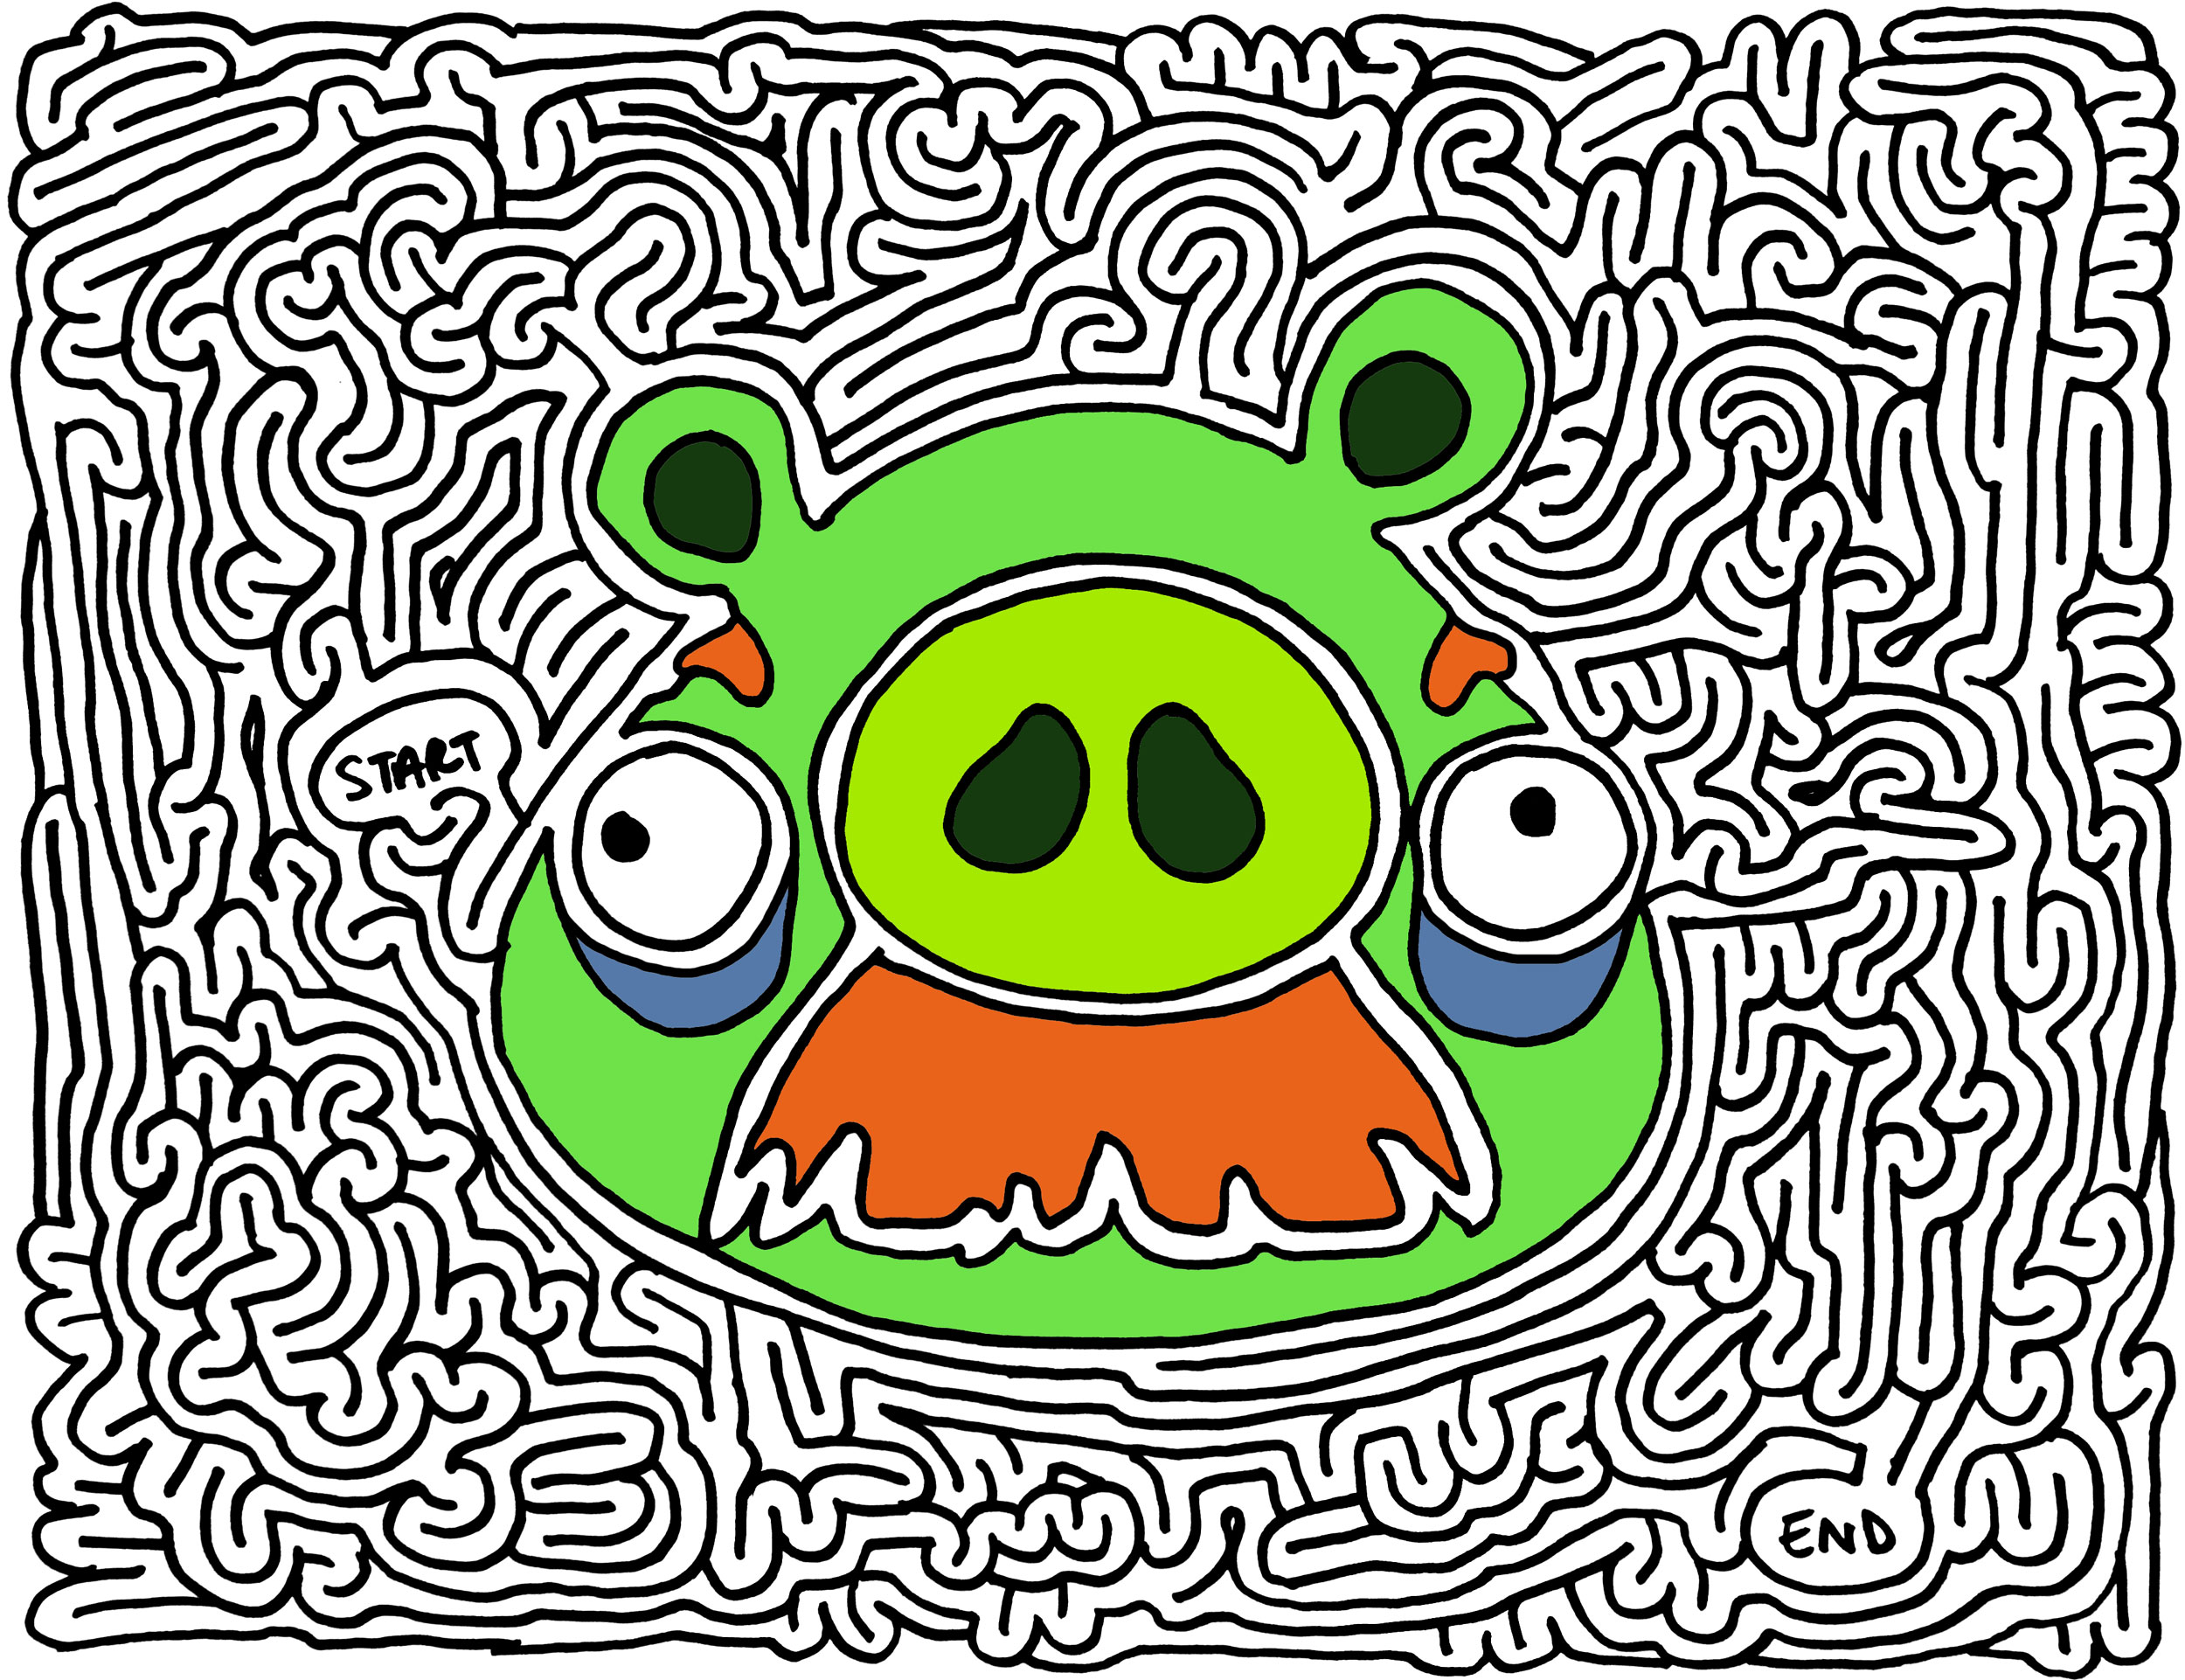 Angry Birds Bad Piggies Coloring Pages Angry birds bad piggiesAngry Birds Bad Piggies Coloring Pages